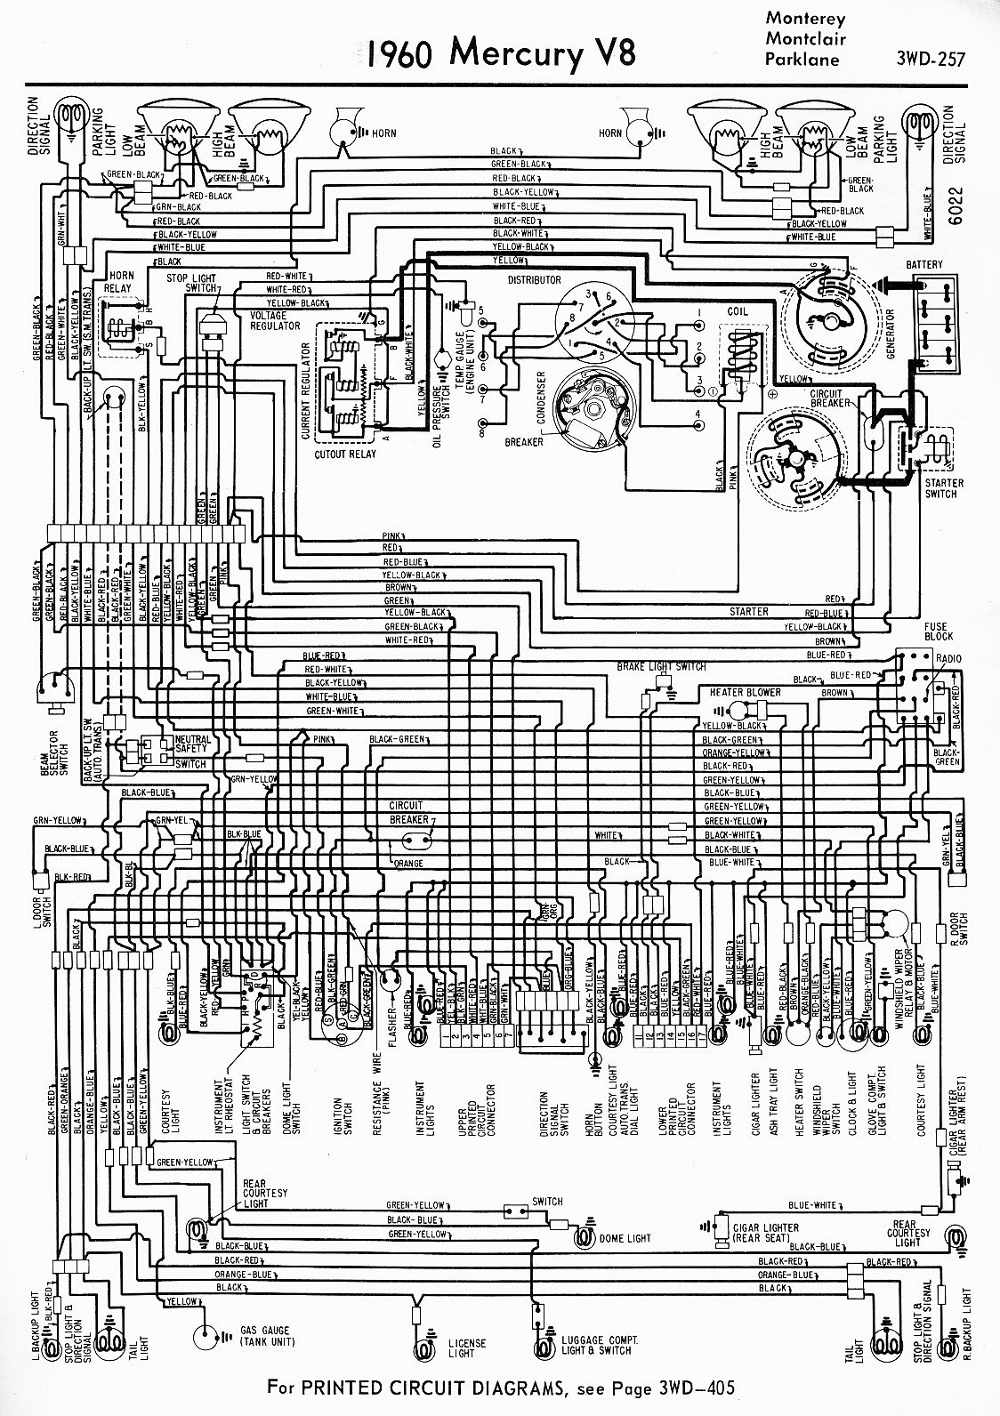 1955 Ford Wiring Schematic Electrical Diagram Schematics 8n Tractor Ignition And Other For Lights Diagrams Switch 1954 Mercury